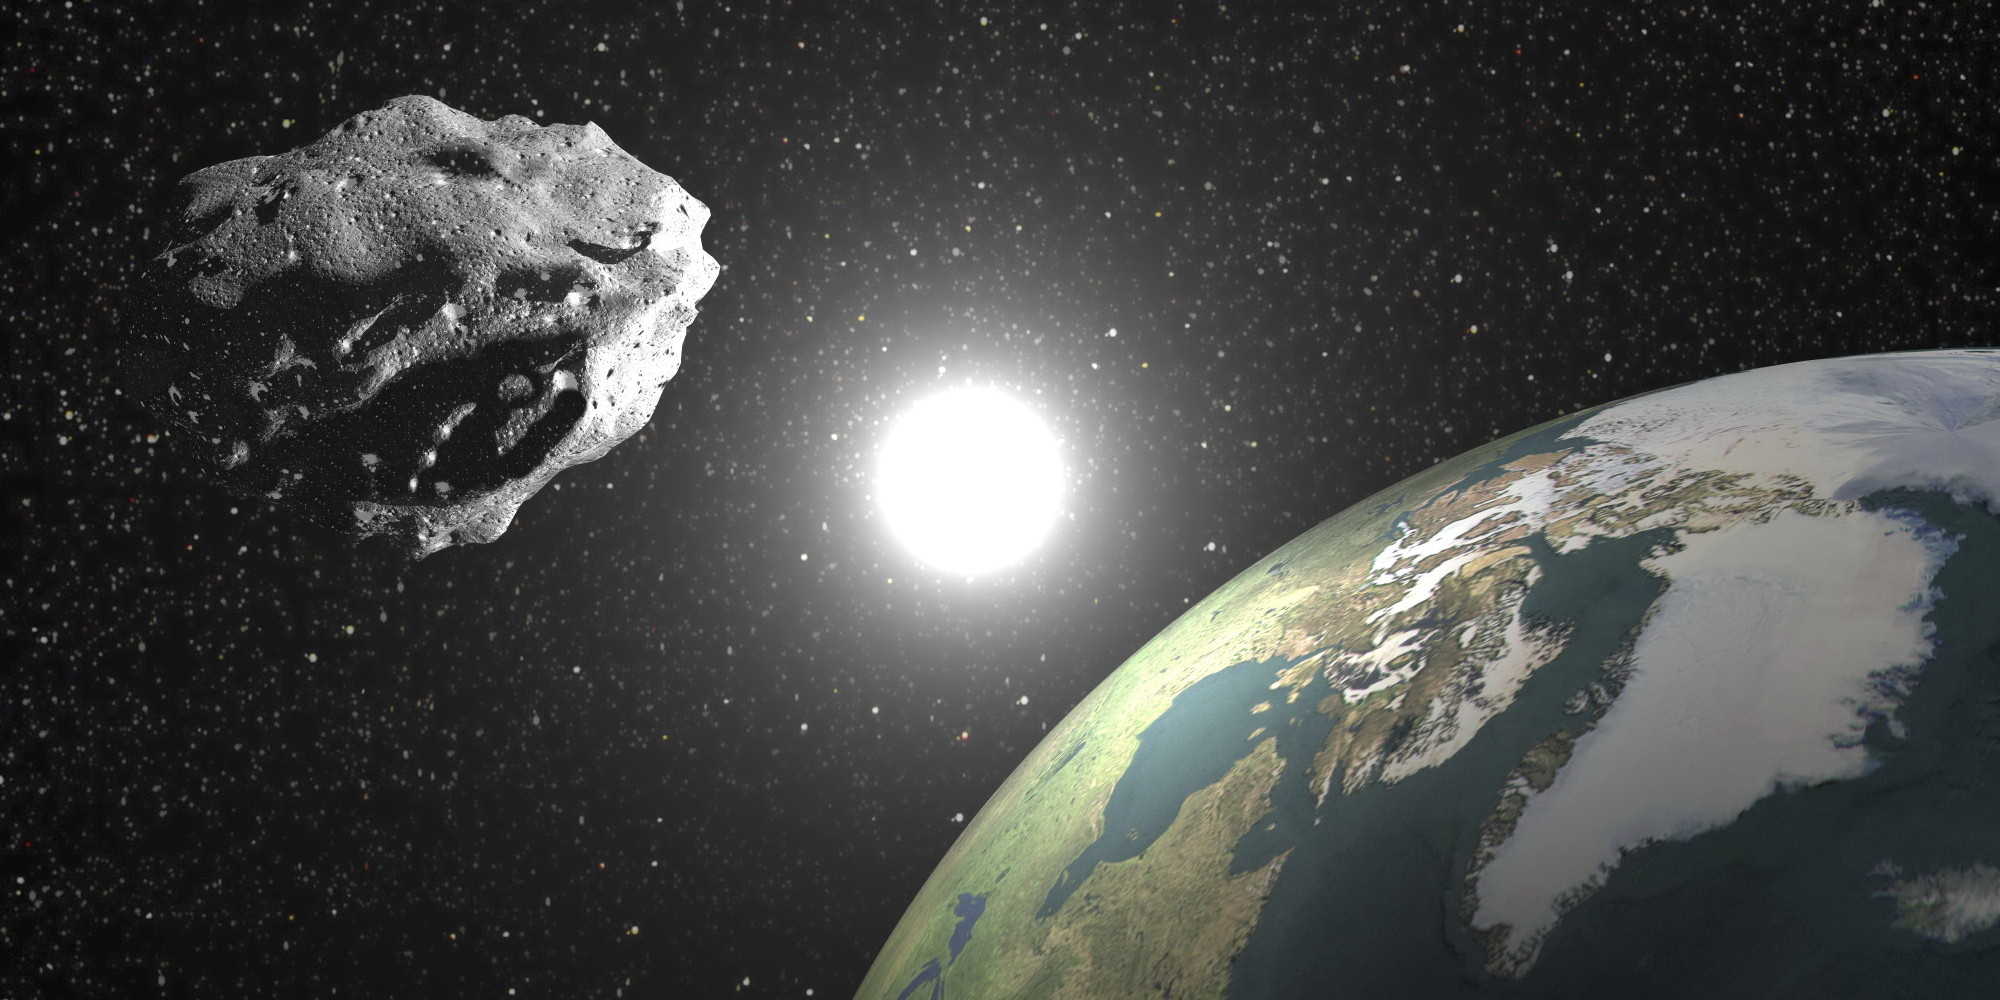 Asteroids: Pictures, Videos, Breaking News